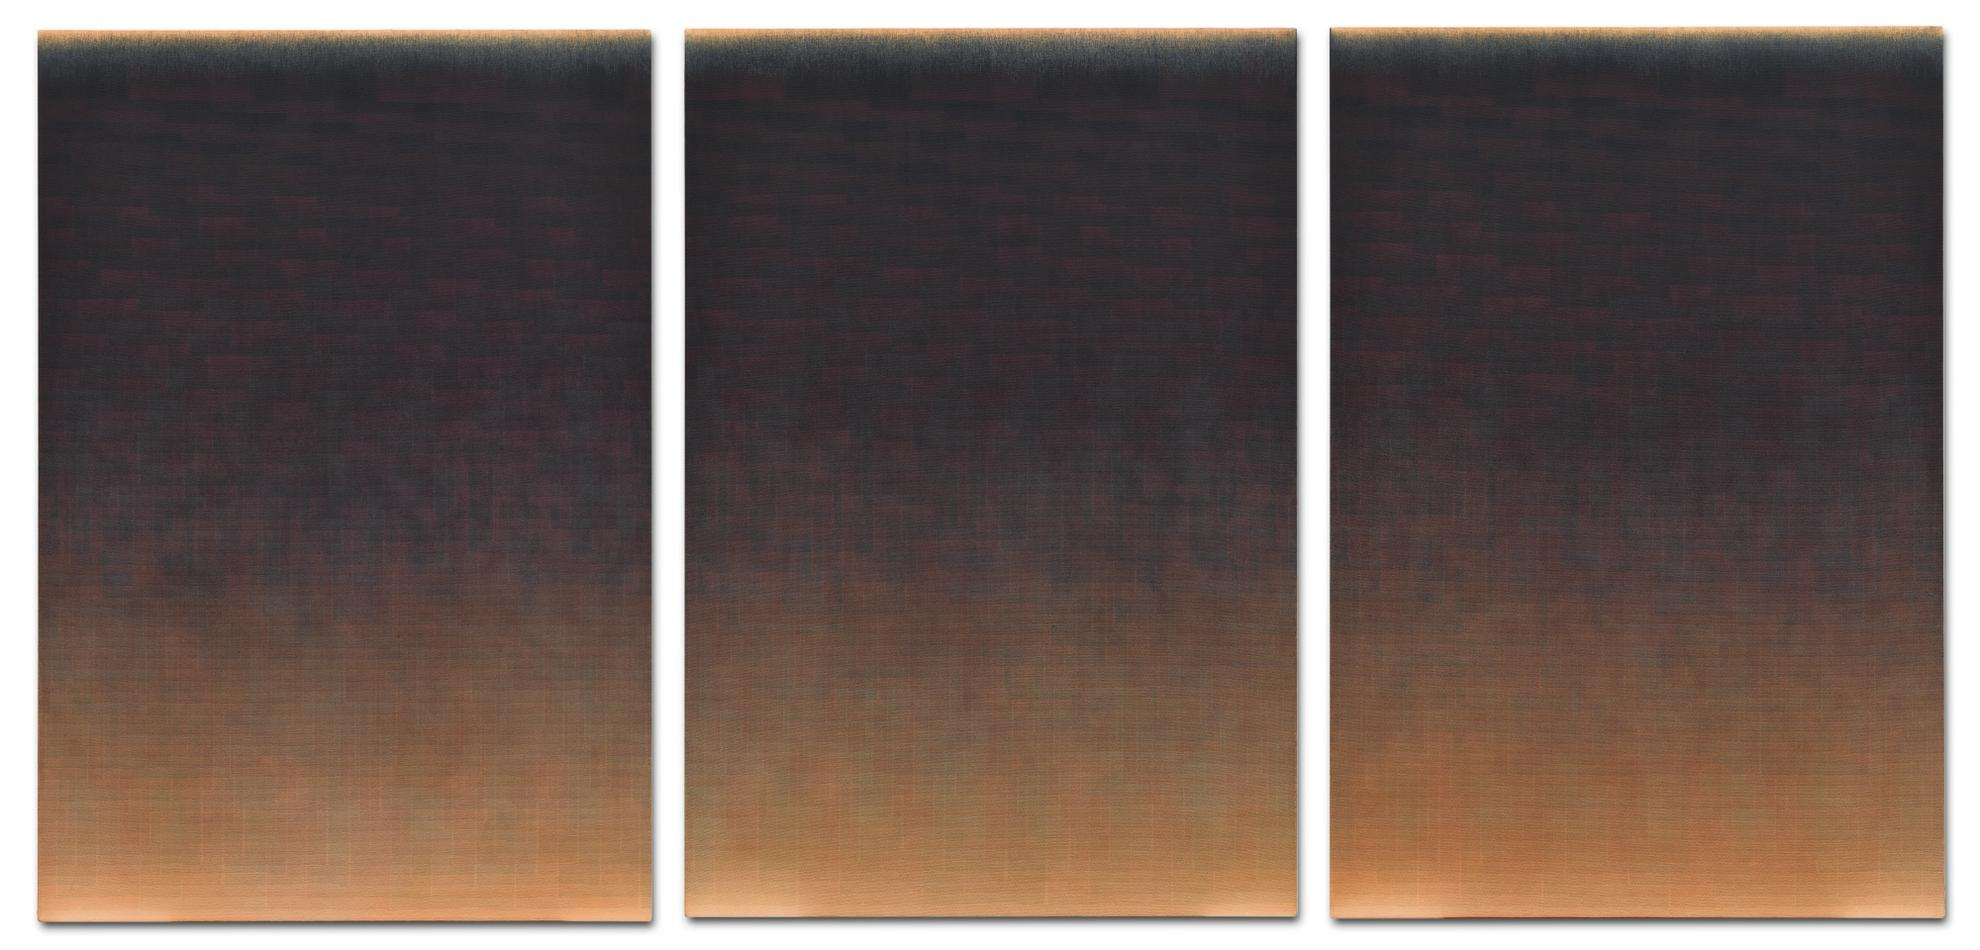 Shen Chen-Untitled No. 12447-12 (Triptych)-2012